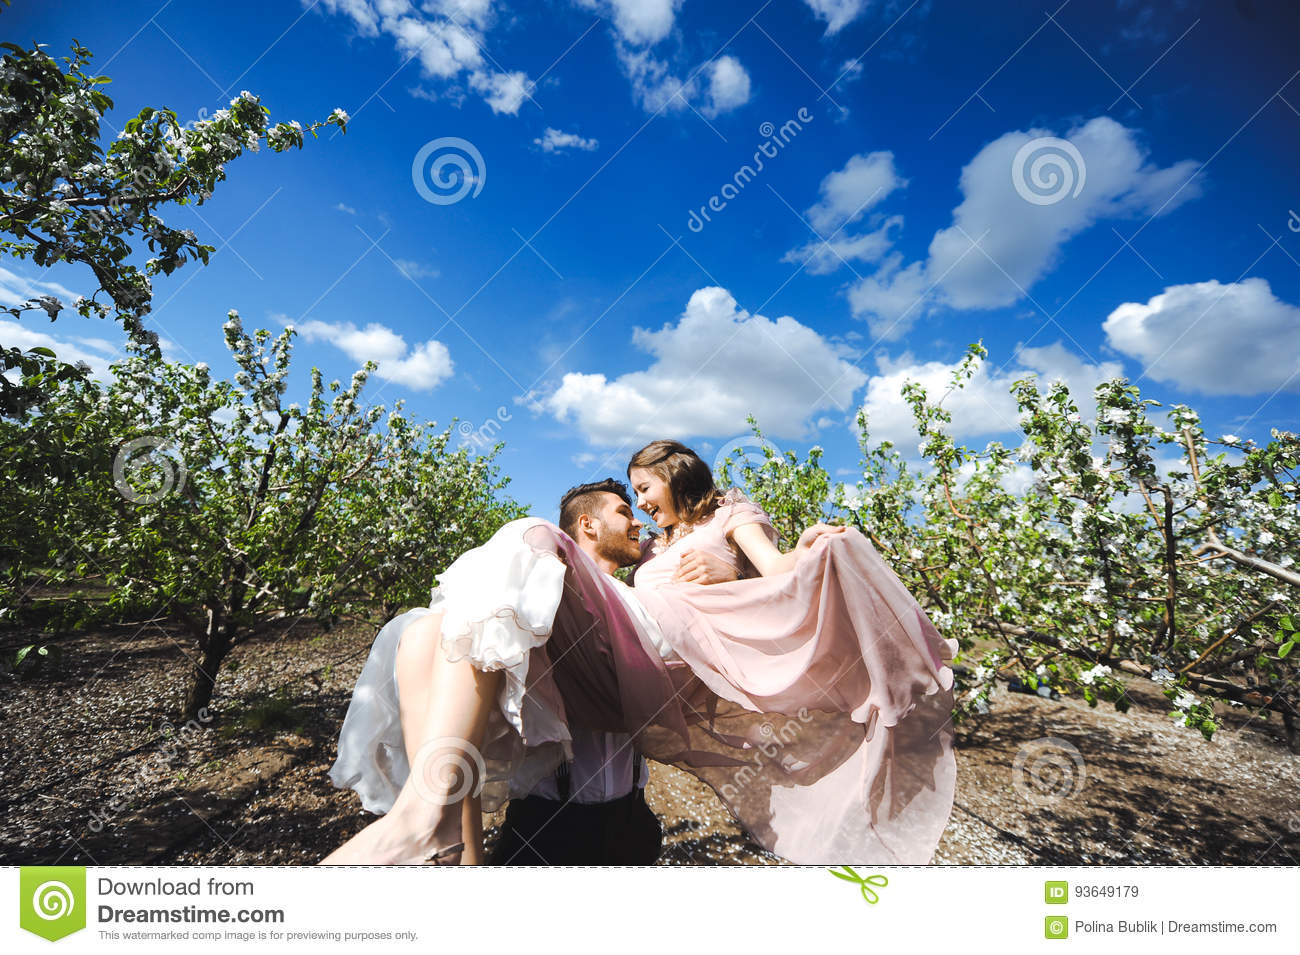 Couple Portrait Of A Girl And Guy Looking For A Wedding Dress A